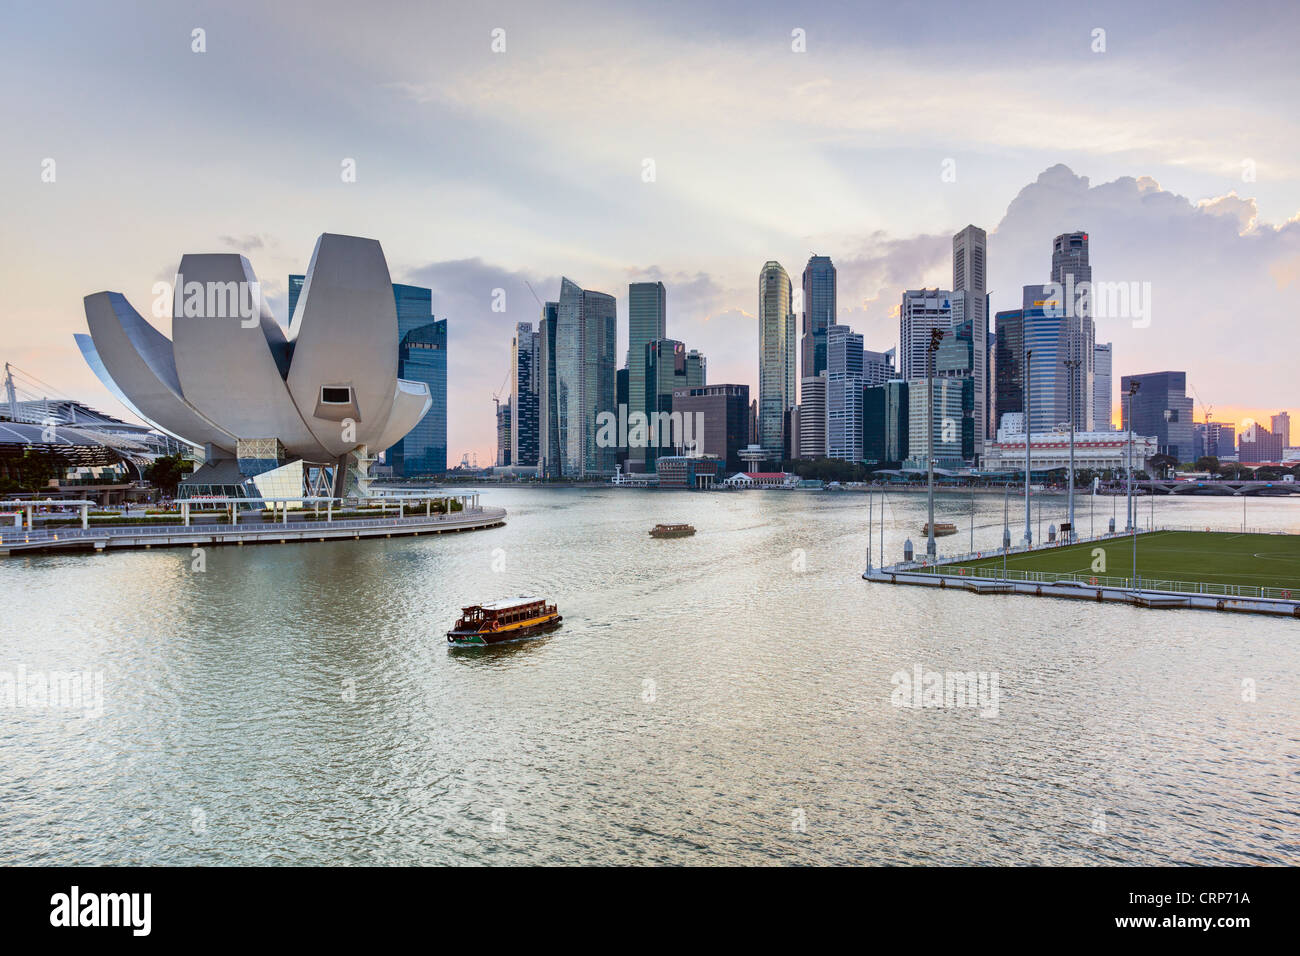 South East Asia, Singapore, Elevated view over the City Centre and Marina Bay - Stock Image